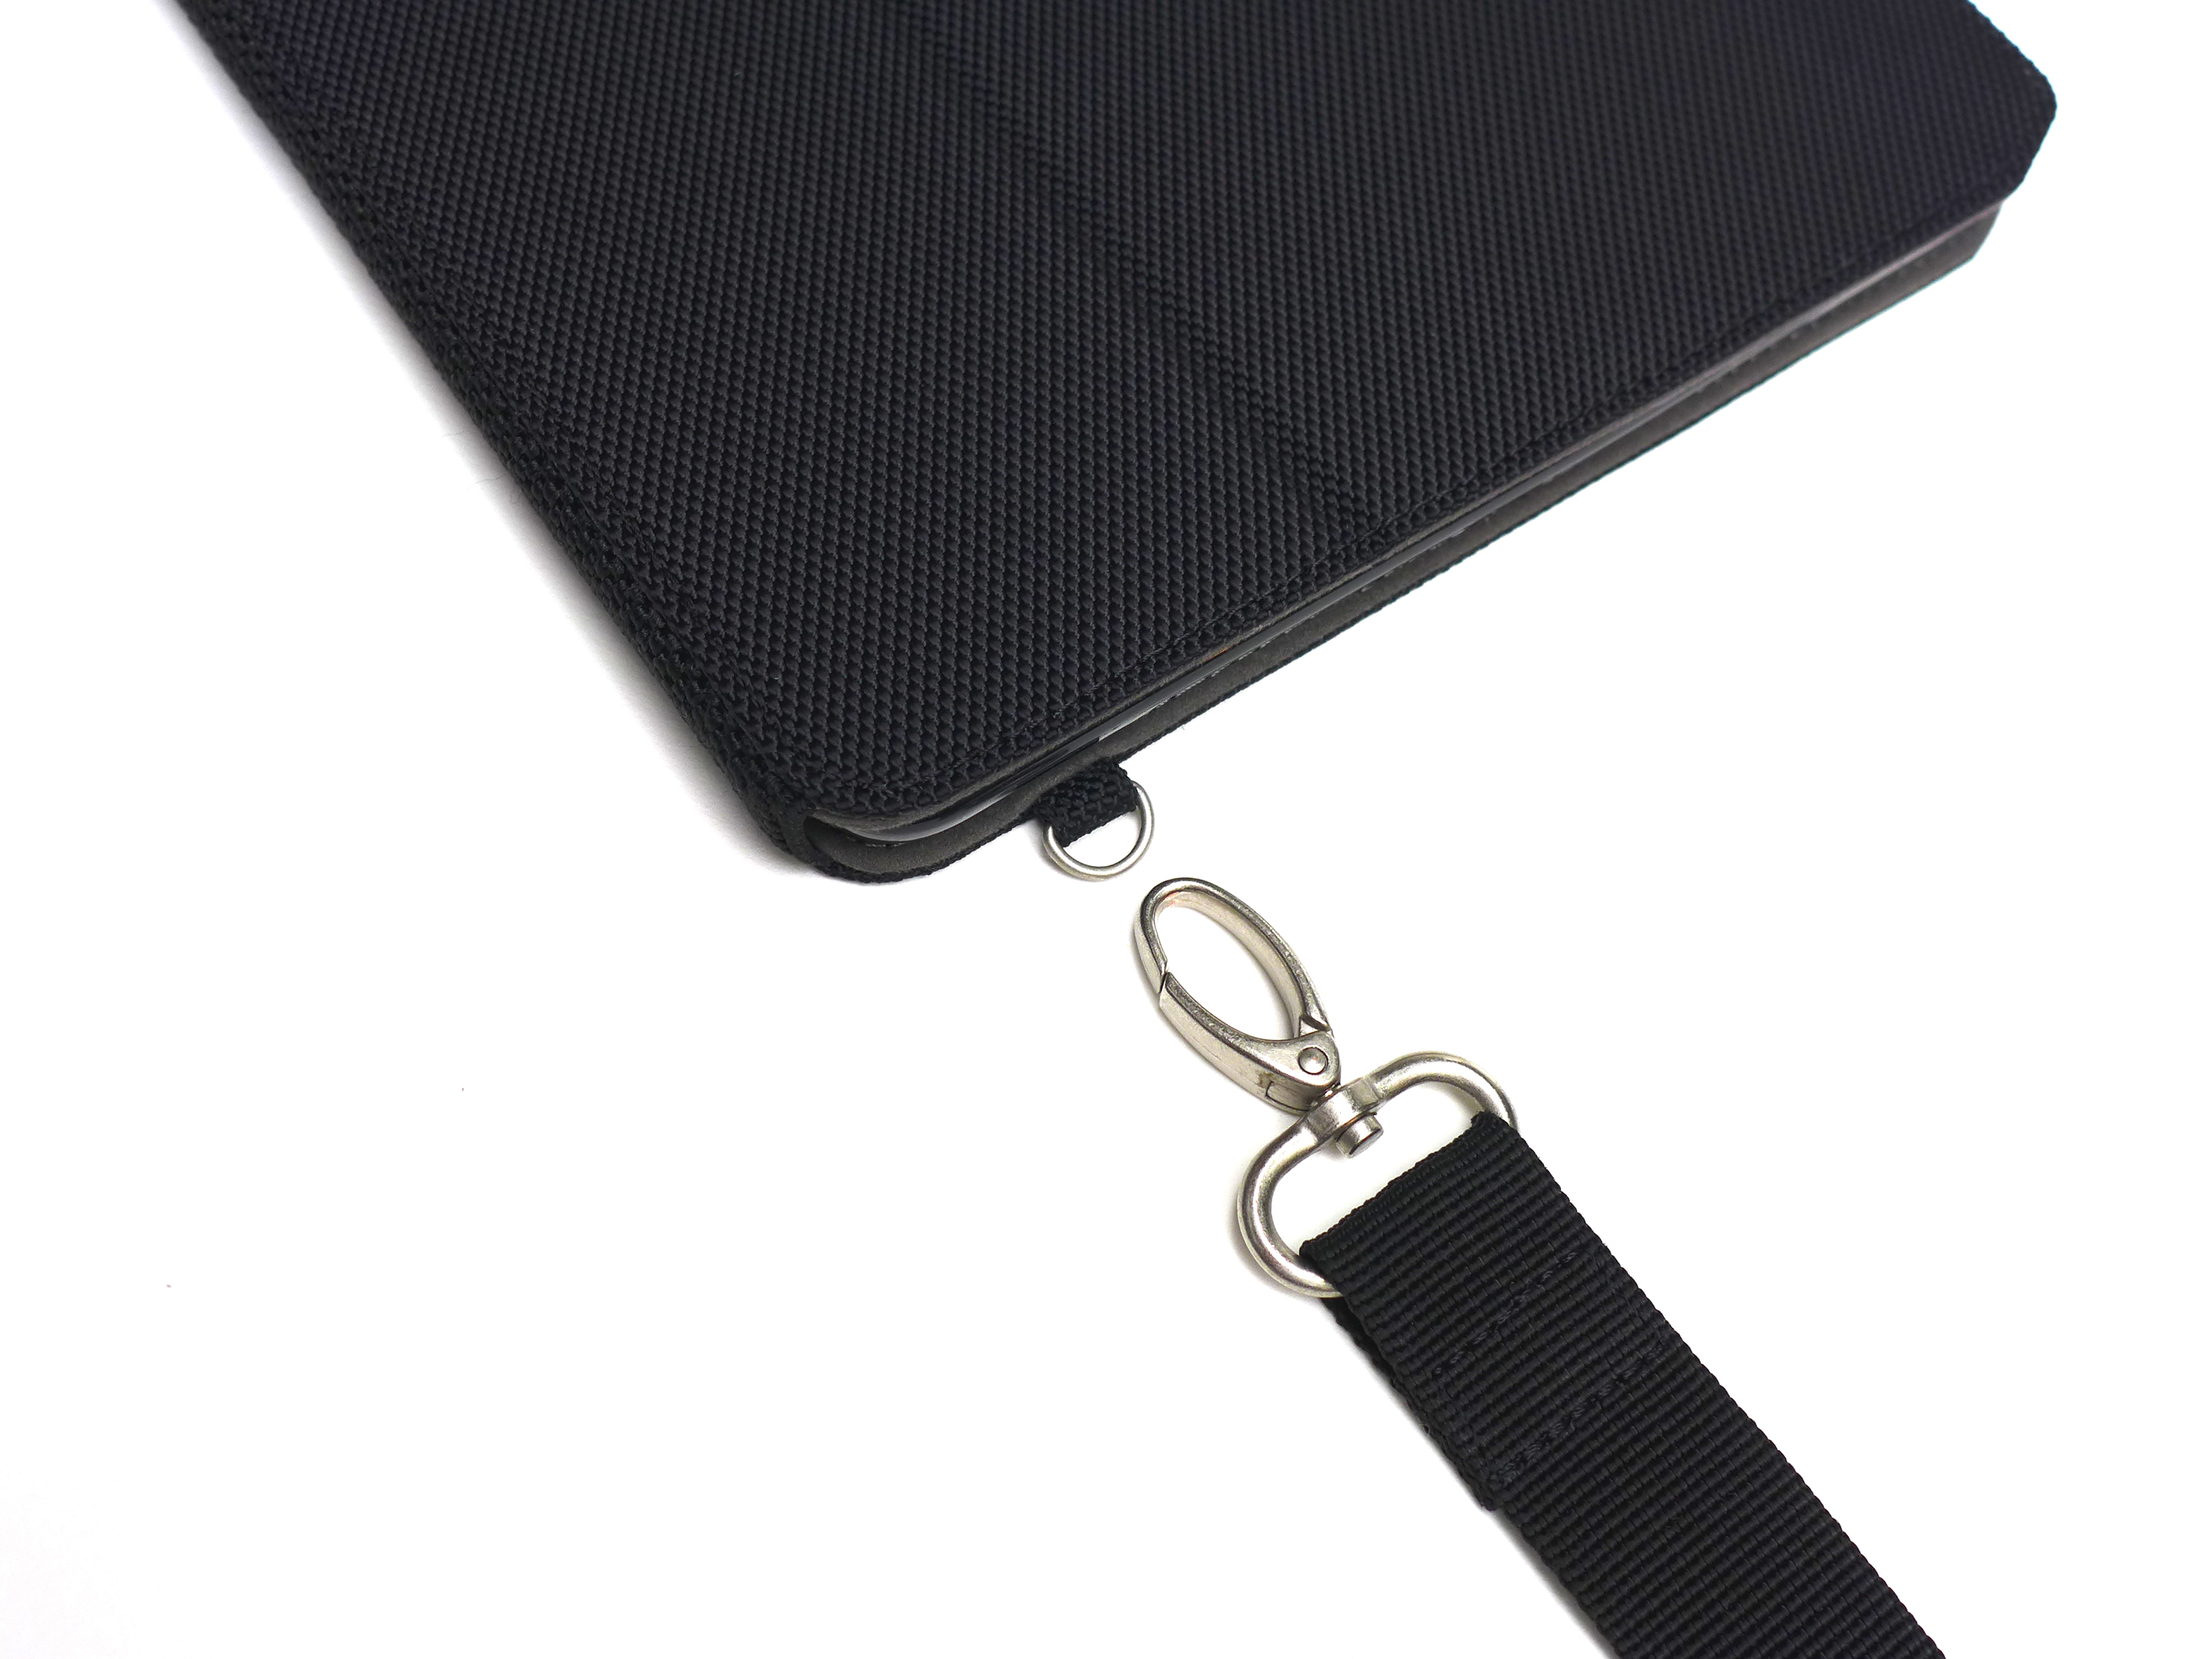 ipad case with shoulder strap for 2018 6th gen  2017 5th